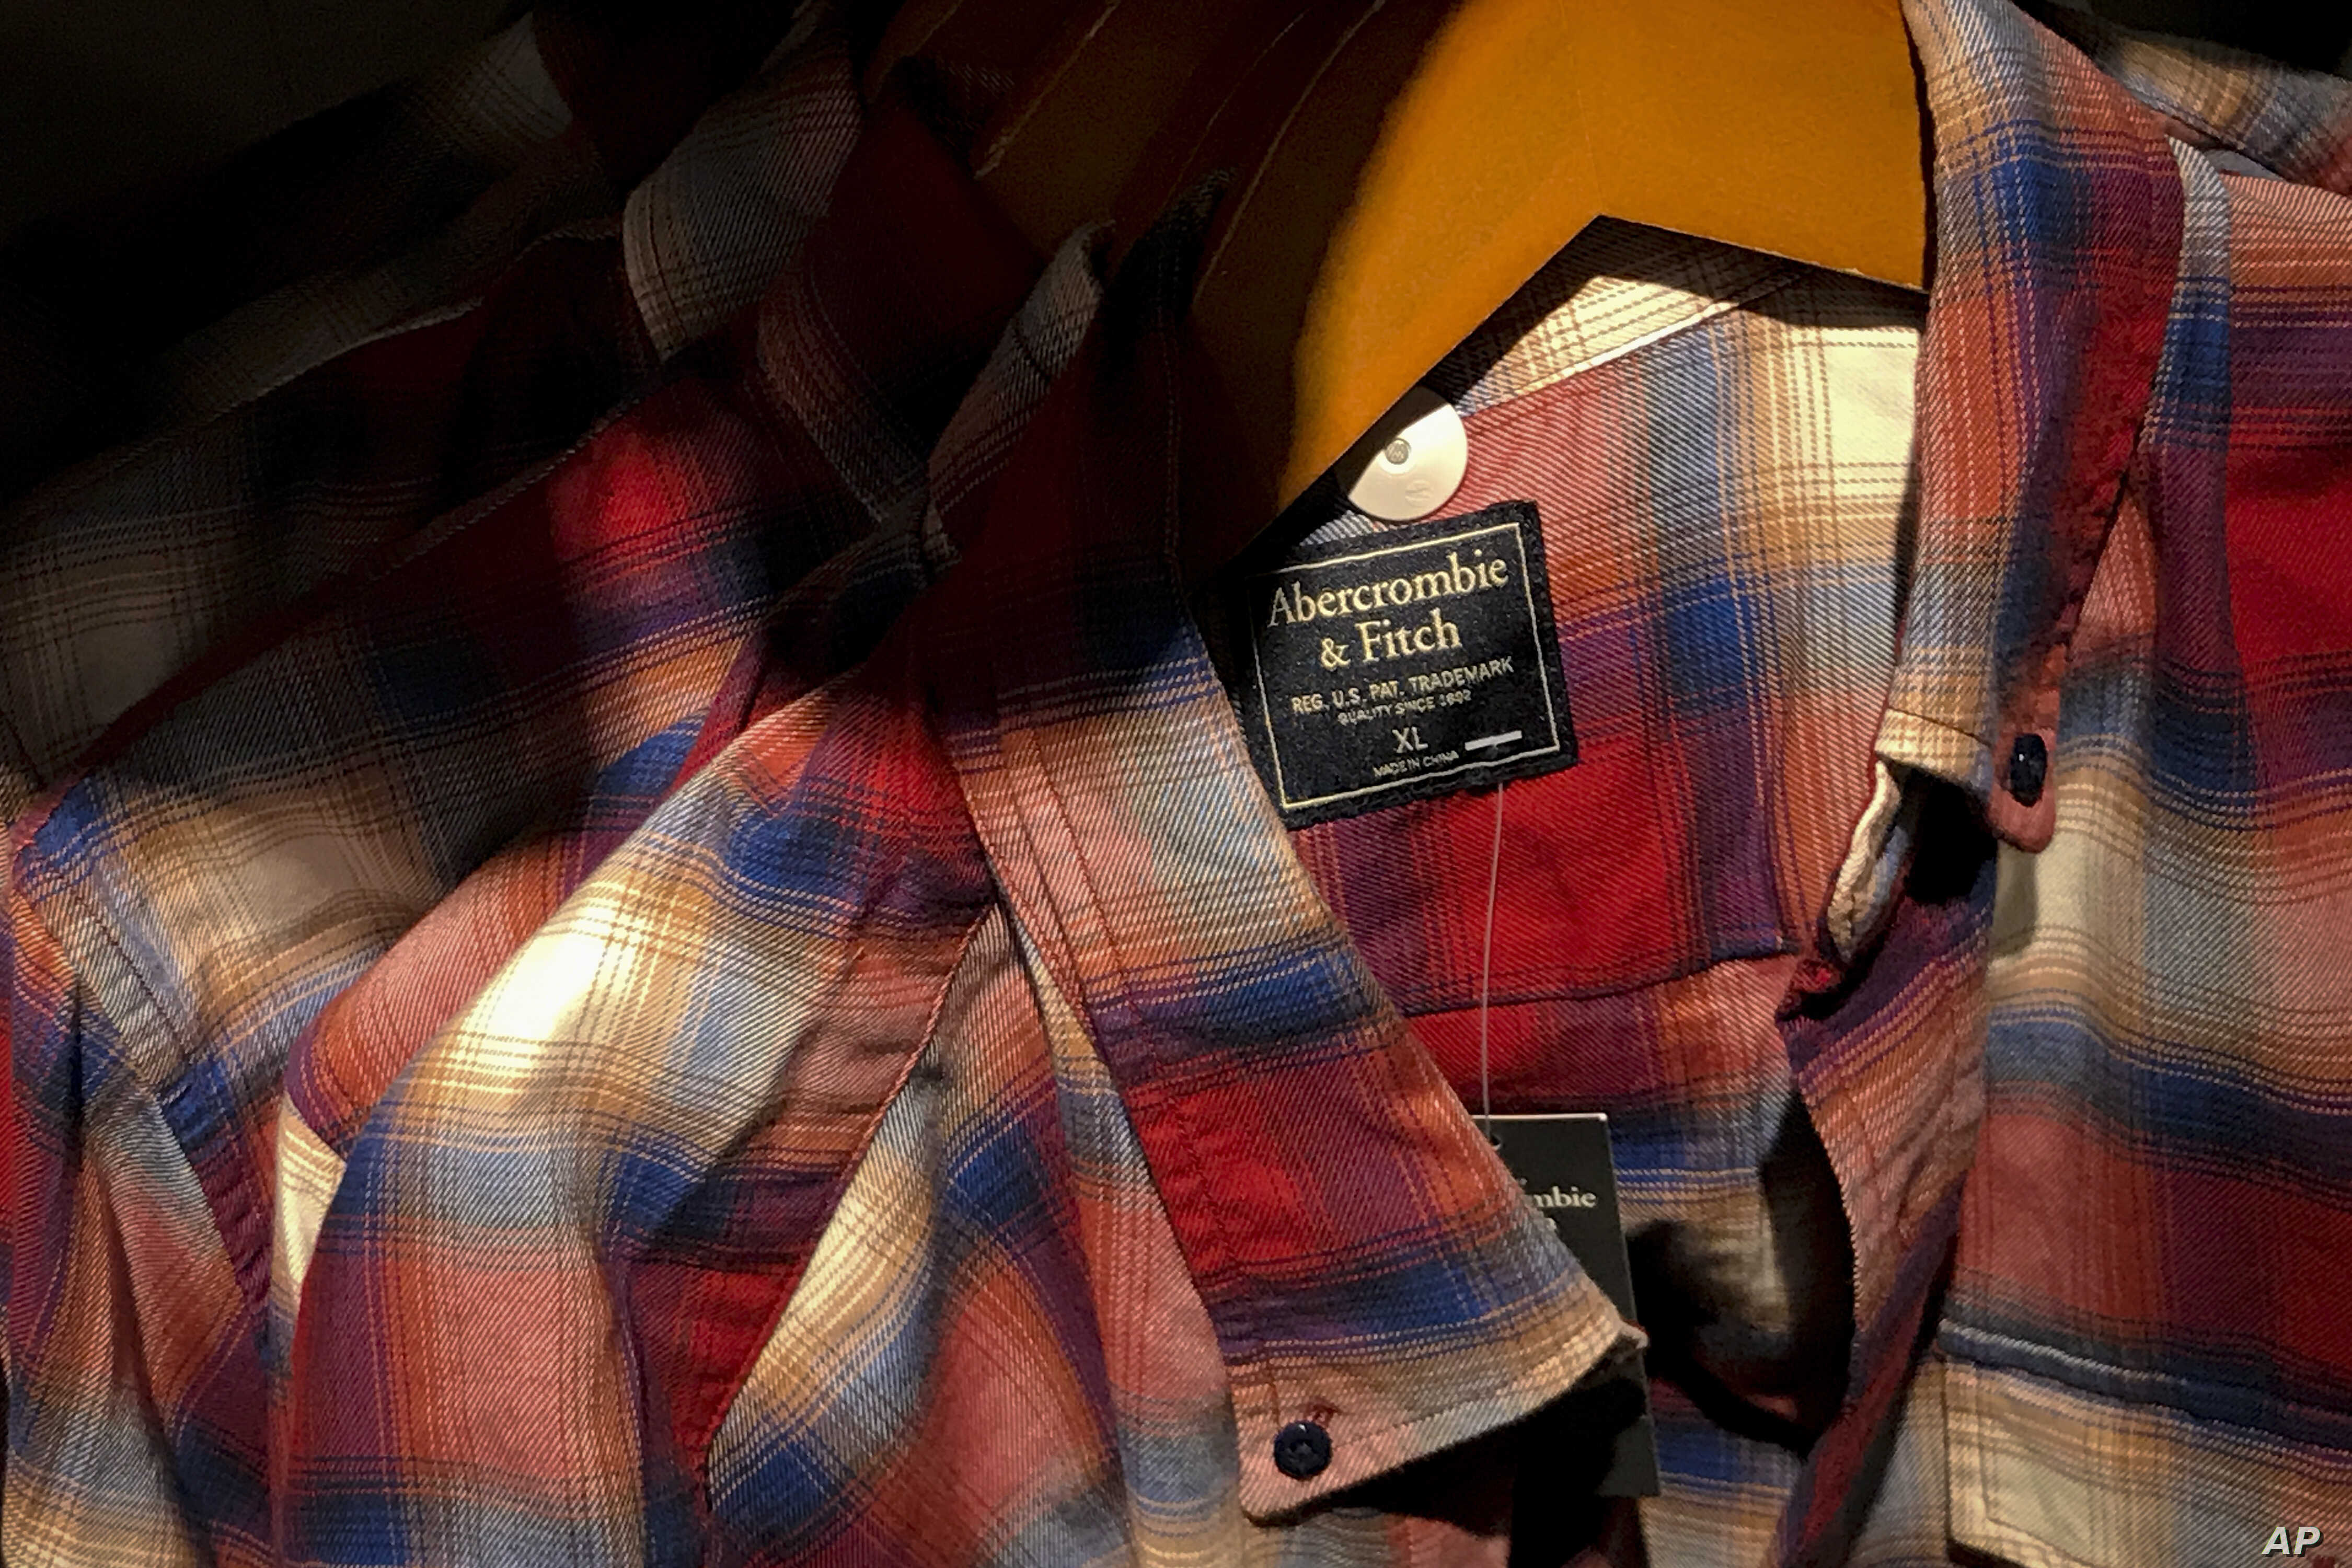 FILE - Clothing from American brand Abercrombie & Fitch, which was made in China, is seen for sale at a store in Beijing.